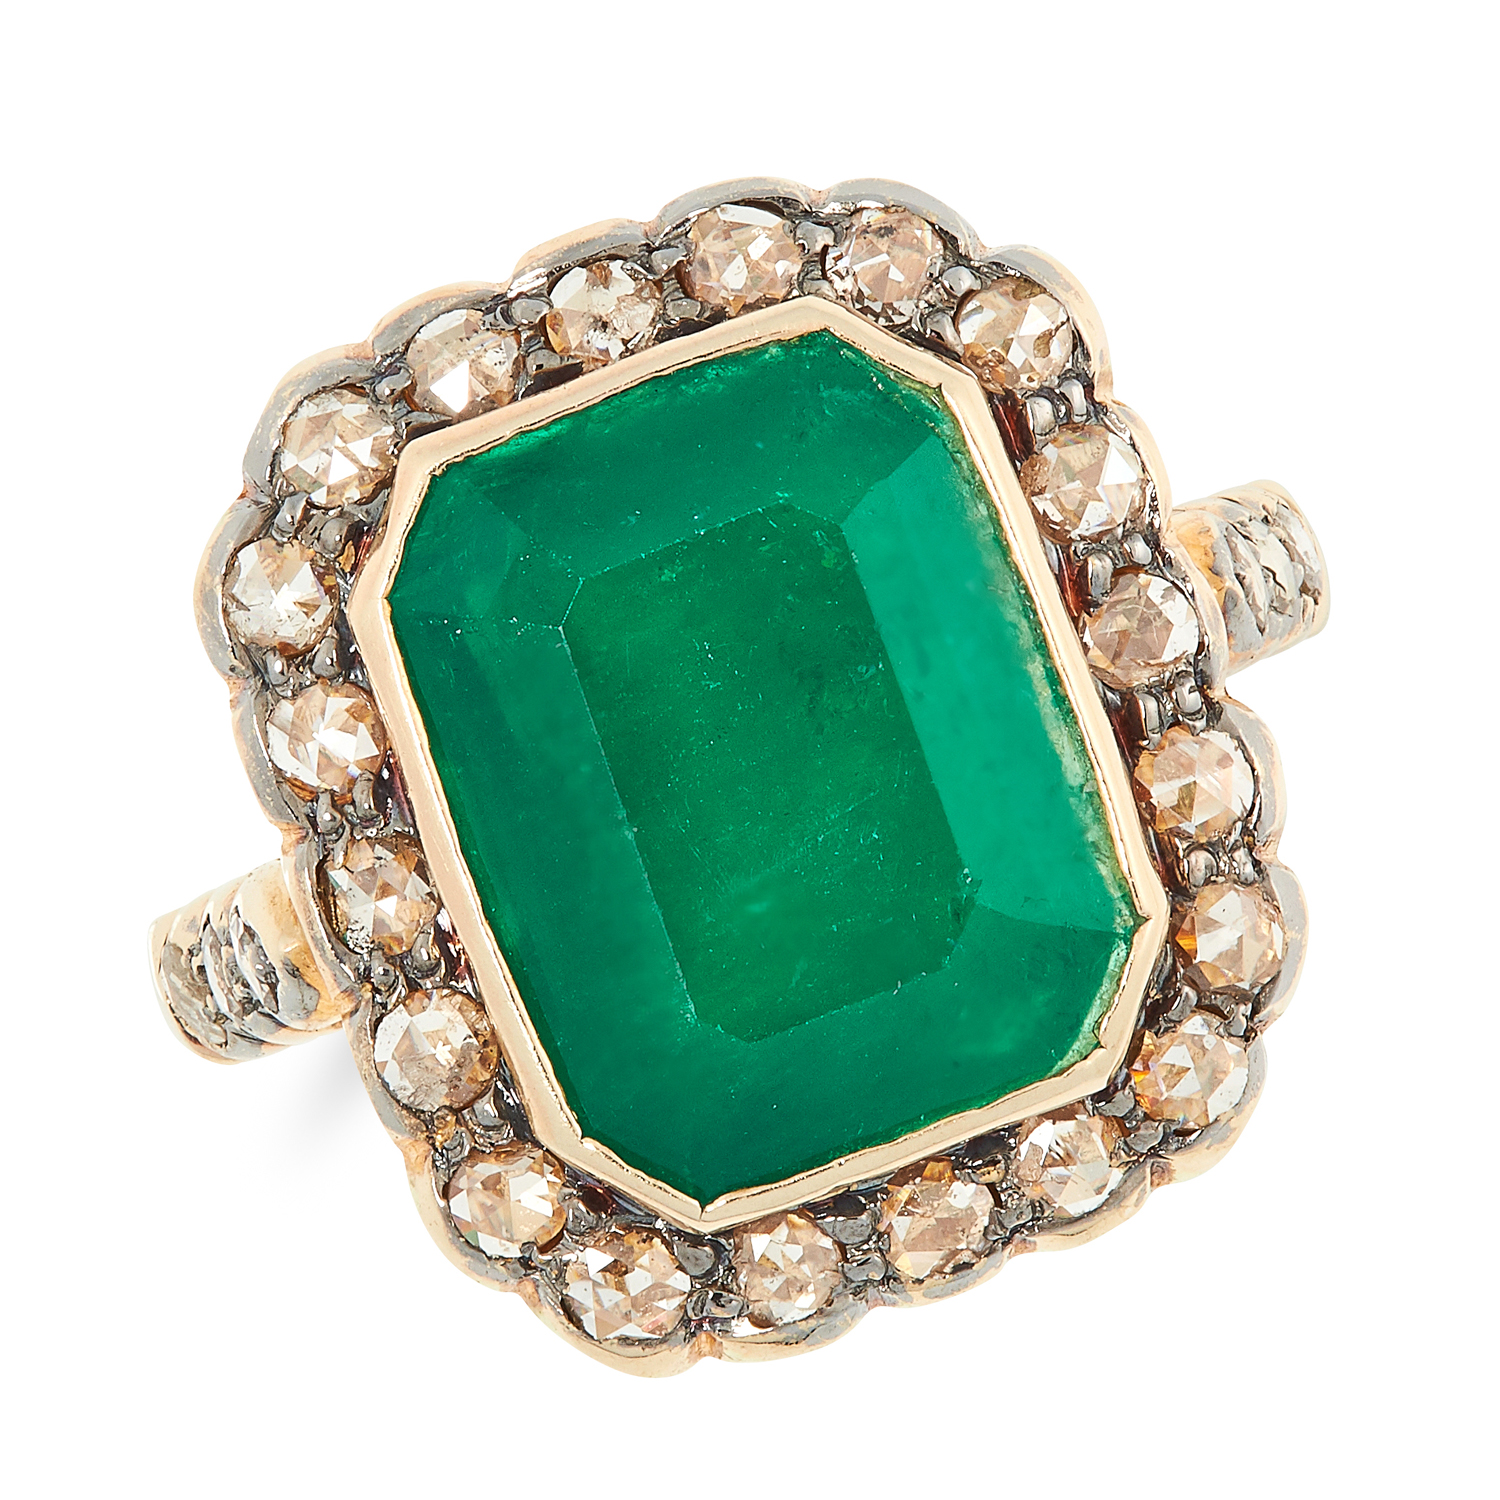 AN EMERALD AND DIAMOND CLUSTER RING set with an emerald cut emerald of 4.35 carats, in a cluster